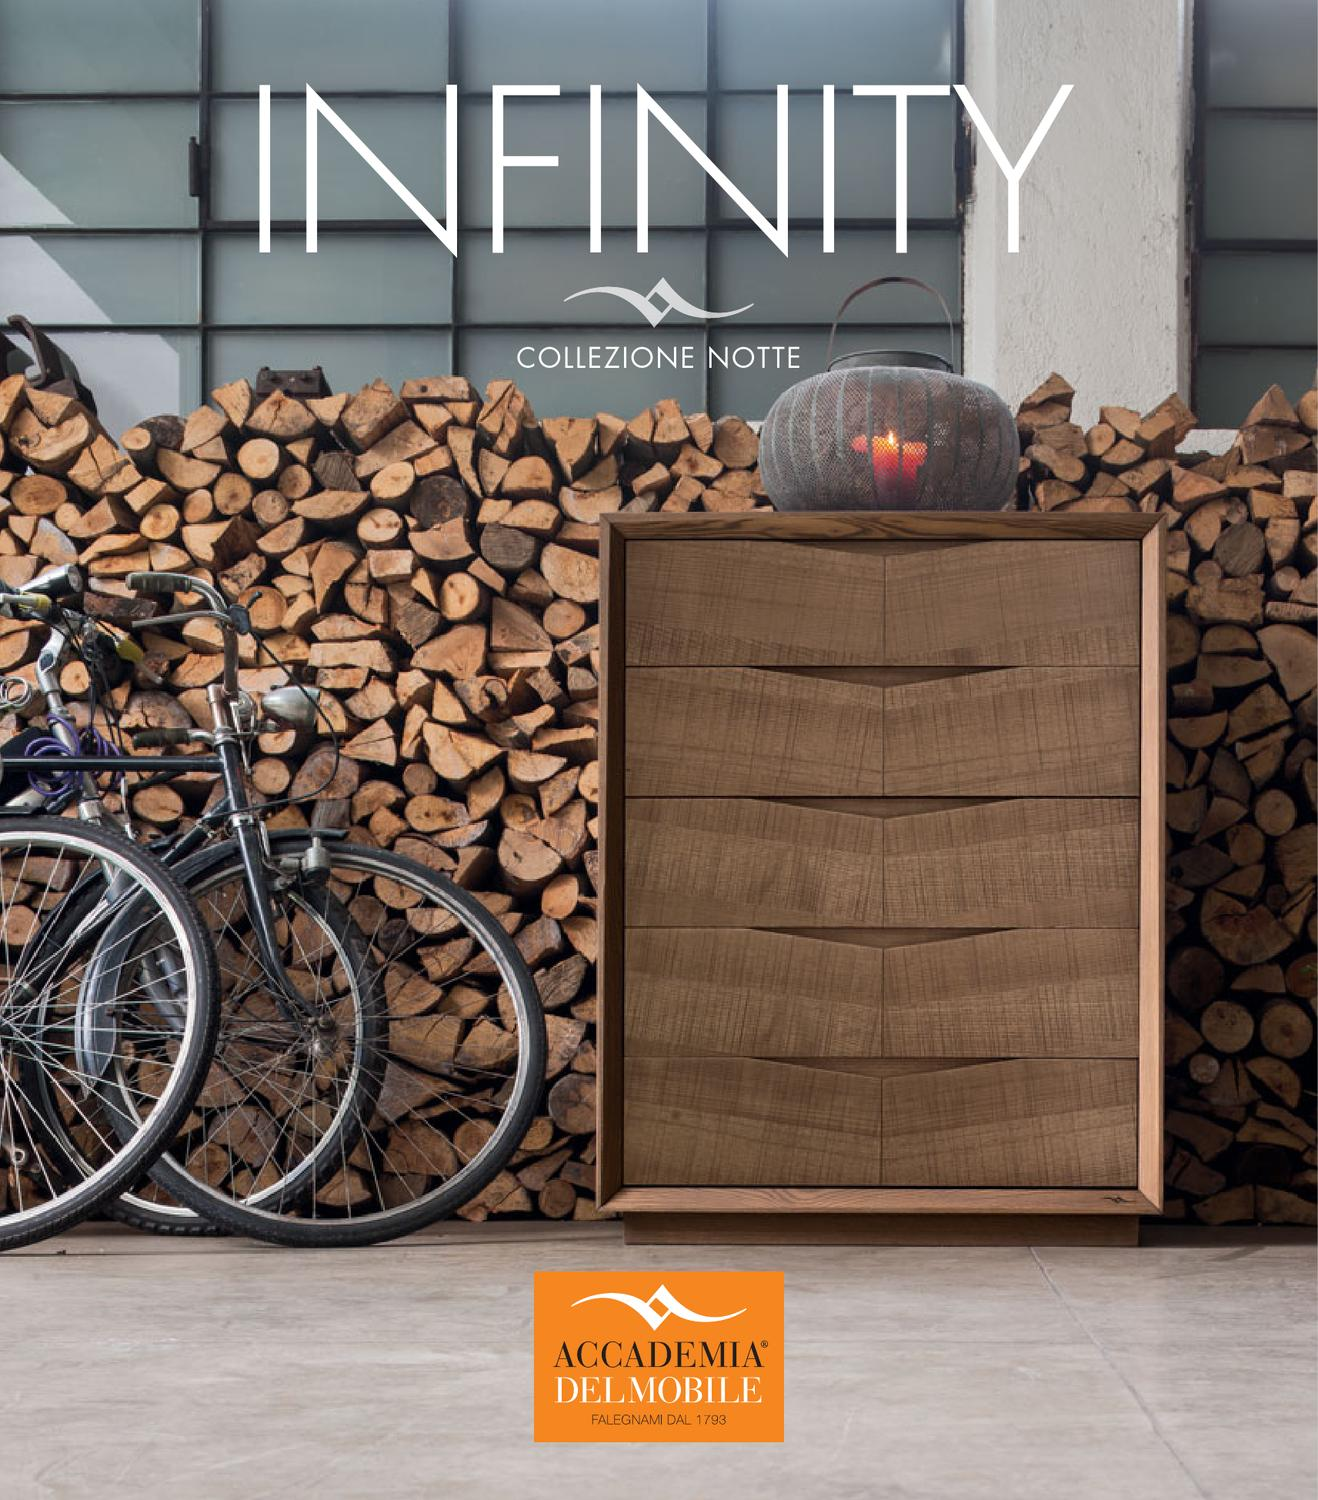 Infinity by accademia del mobile srl issuu - Accademia del mobile librerie ...